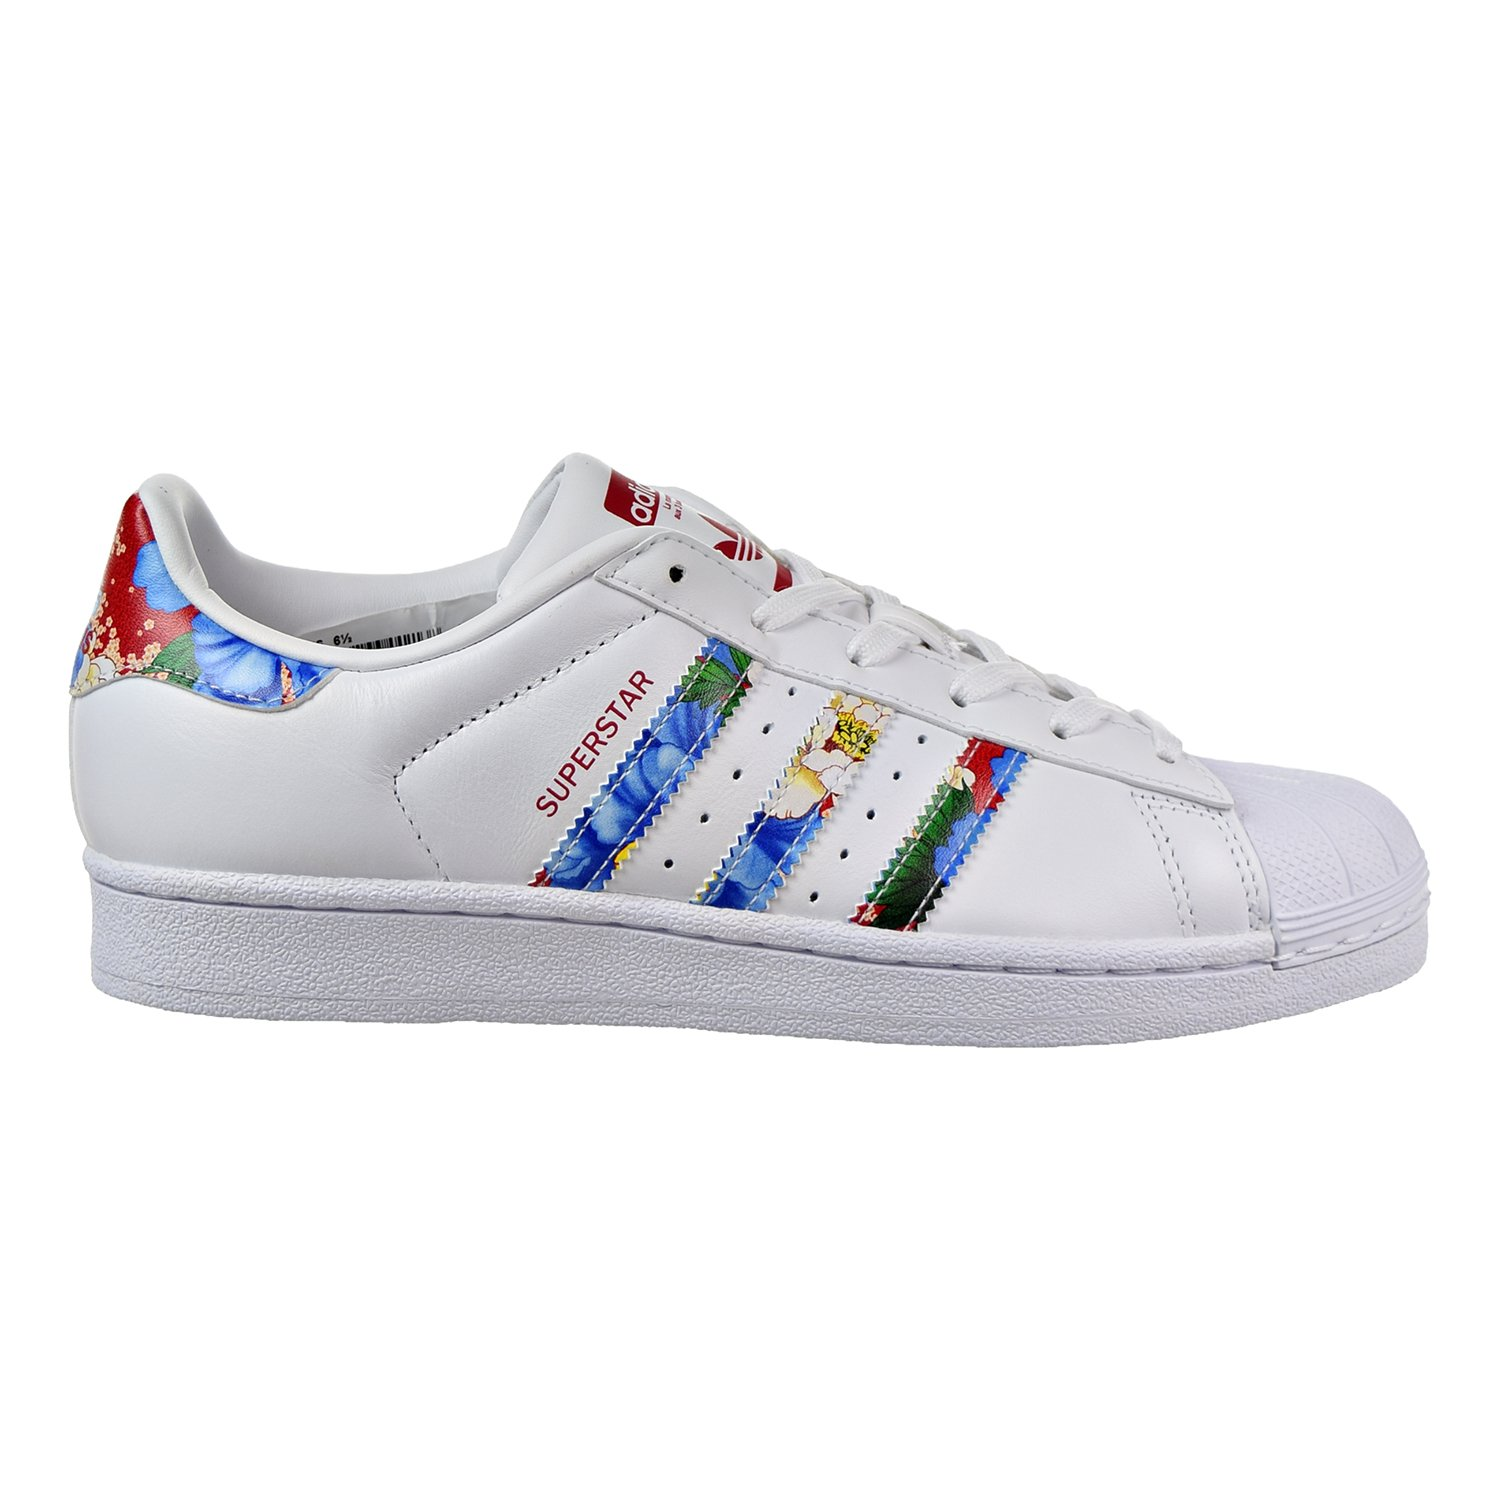 Adidas Women's Superstar White/Red/Multi Color Fashion Sneakers (8)